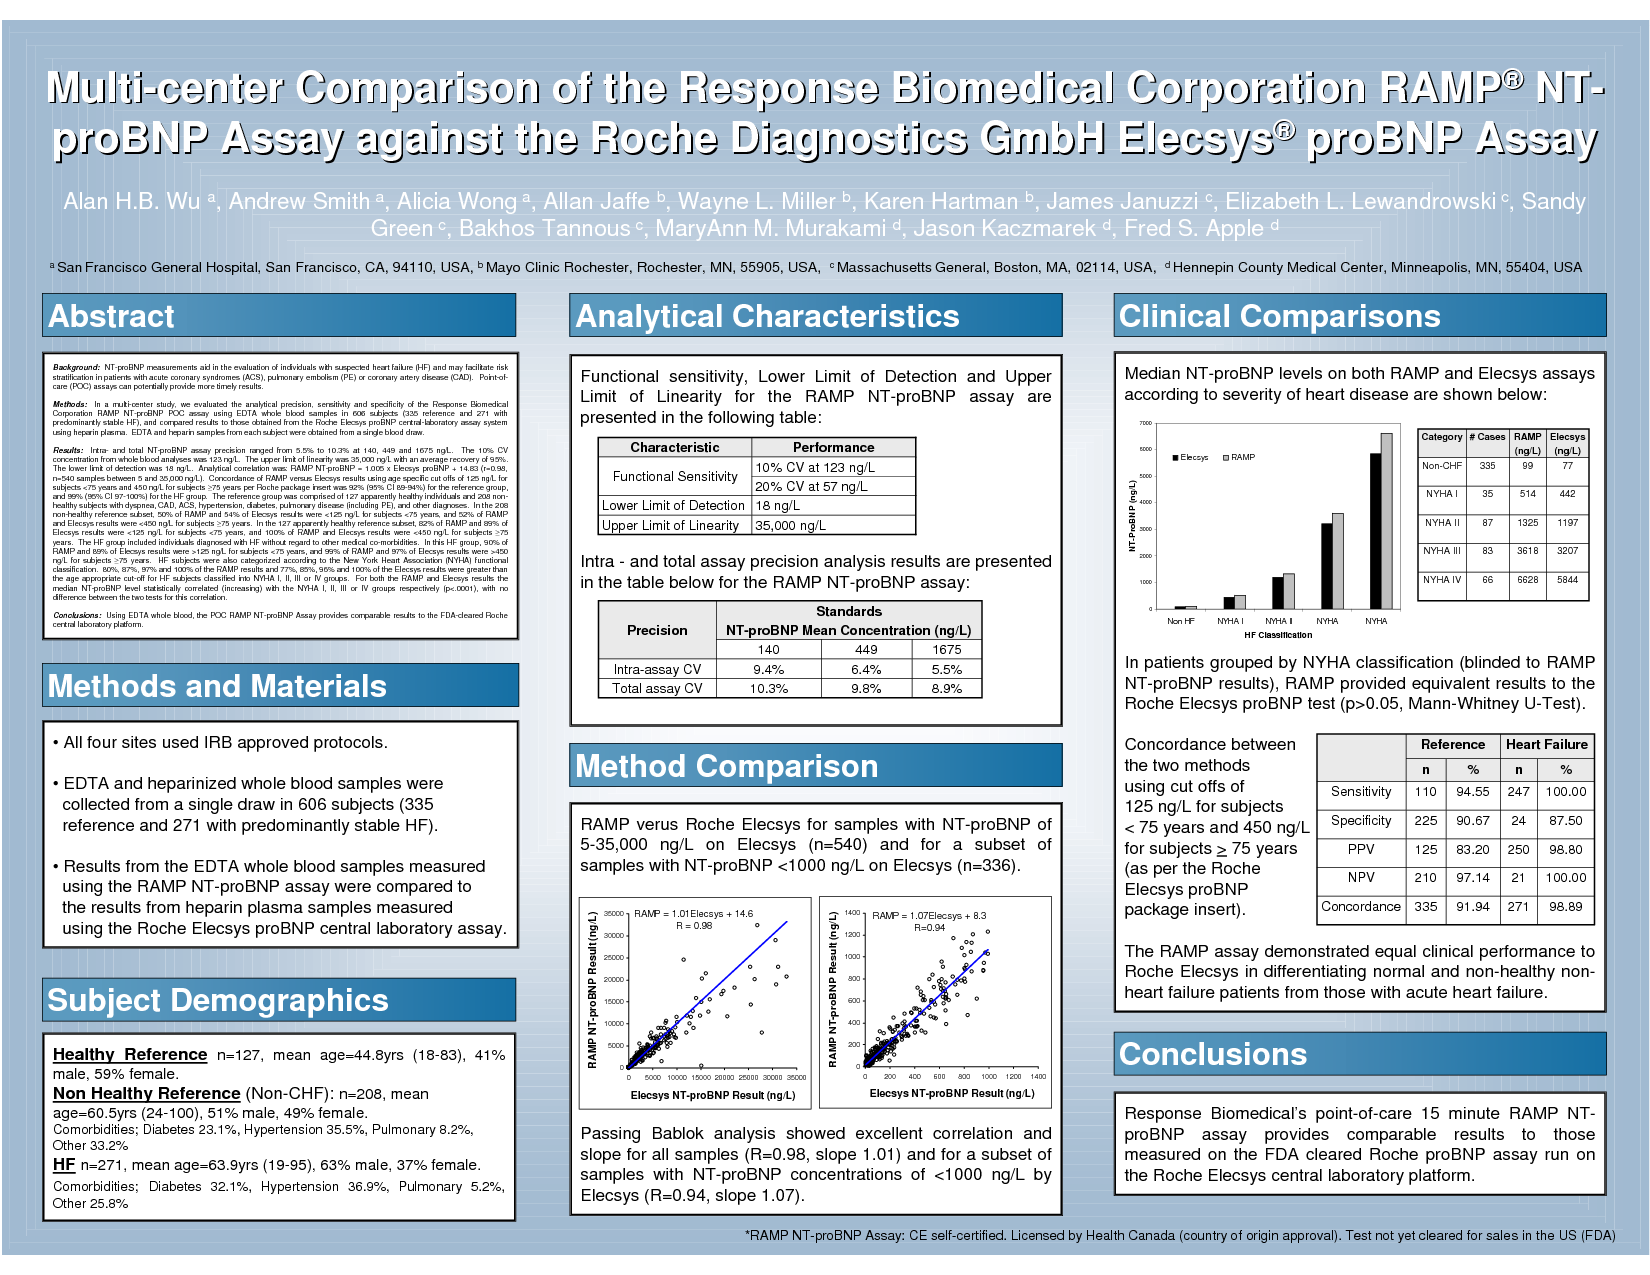 Sample Research Posters | ASHA Convention 2016 | Pinterest ...